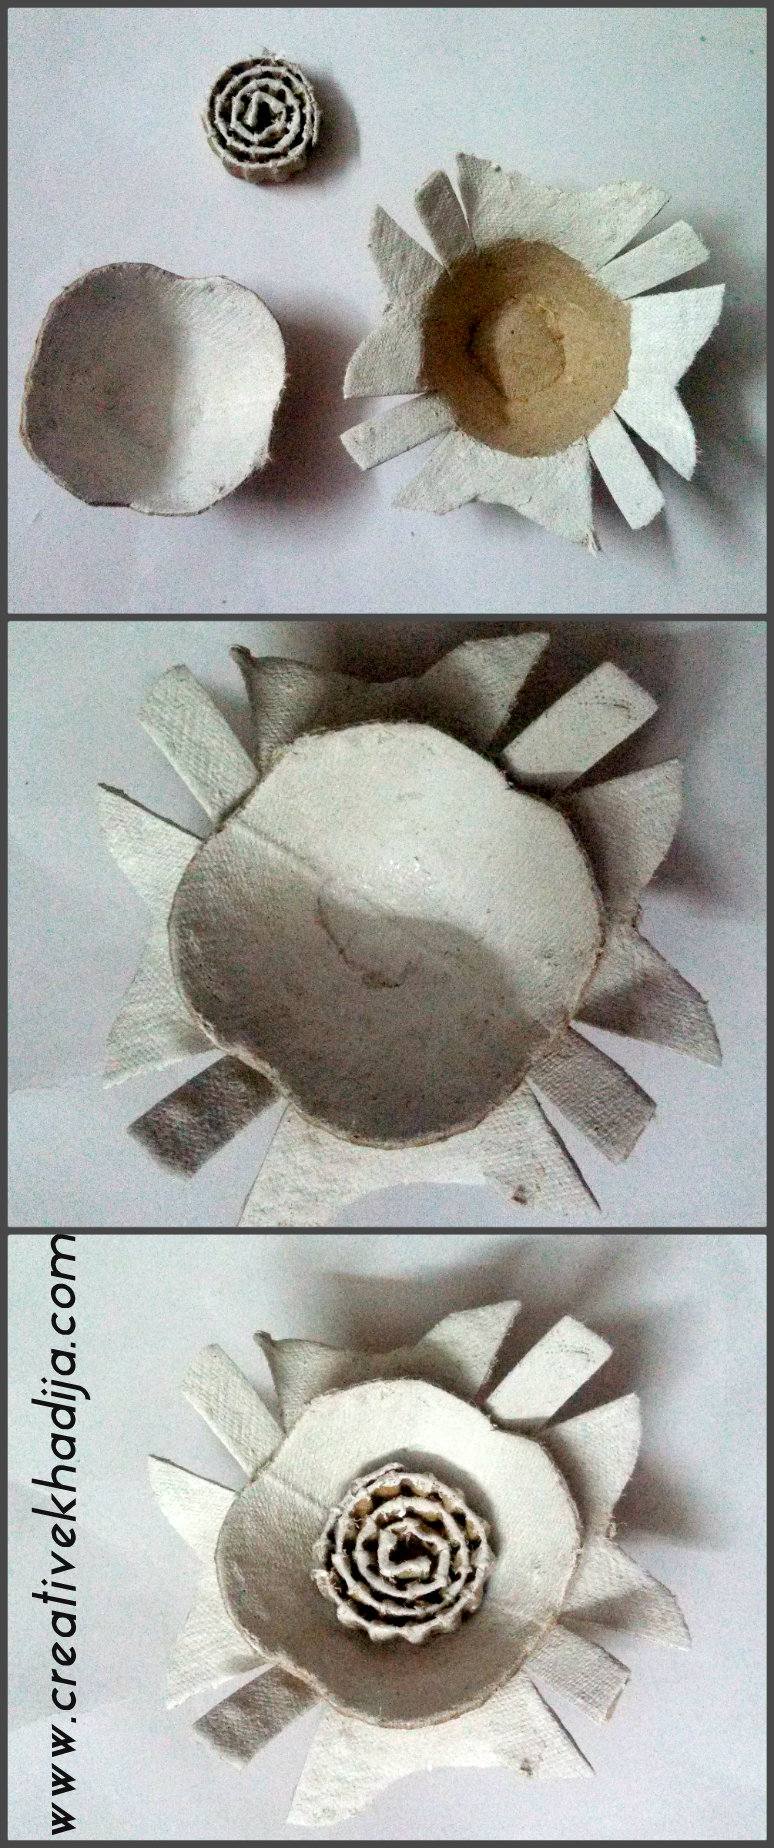 egg carton flowers making tutorial